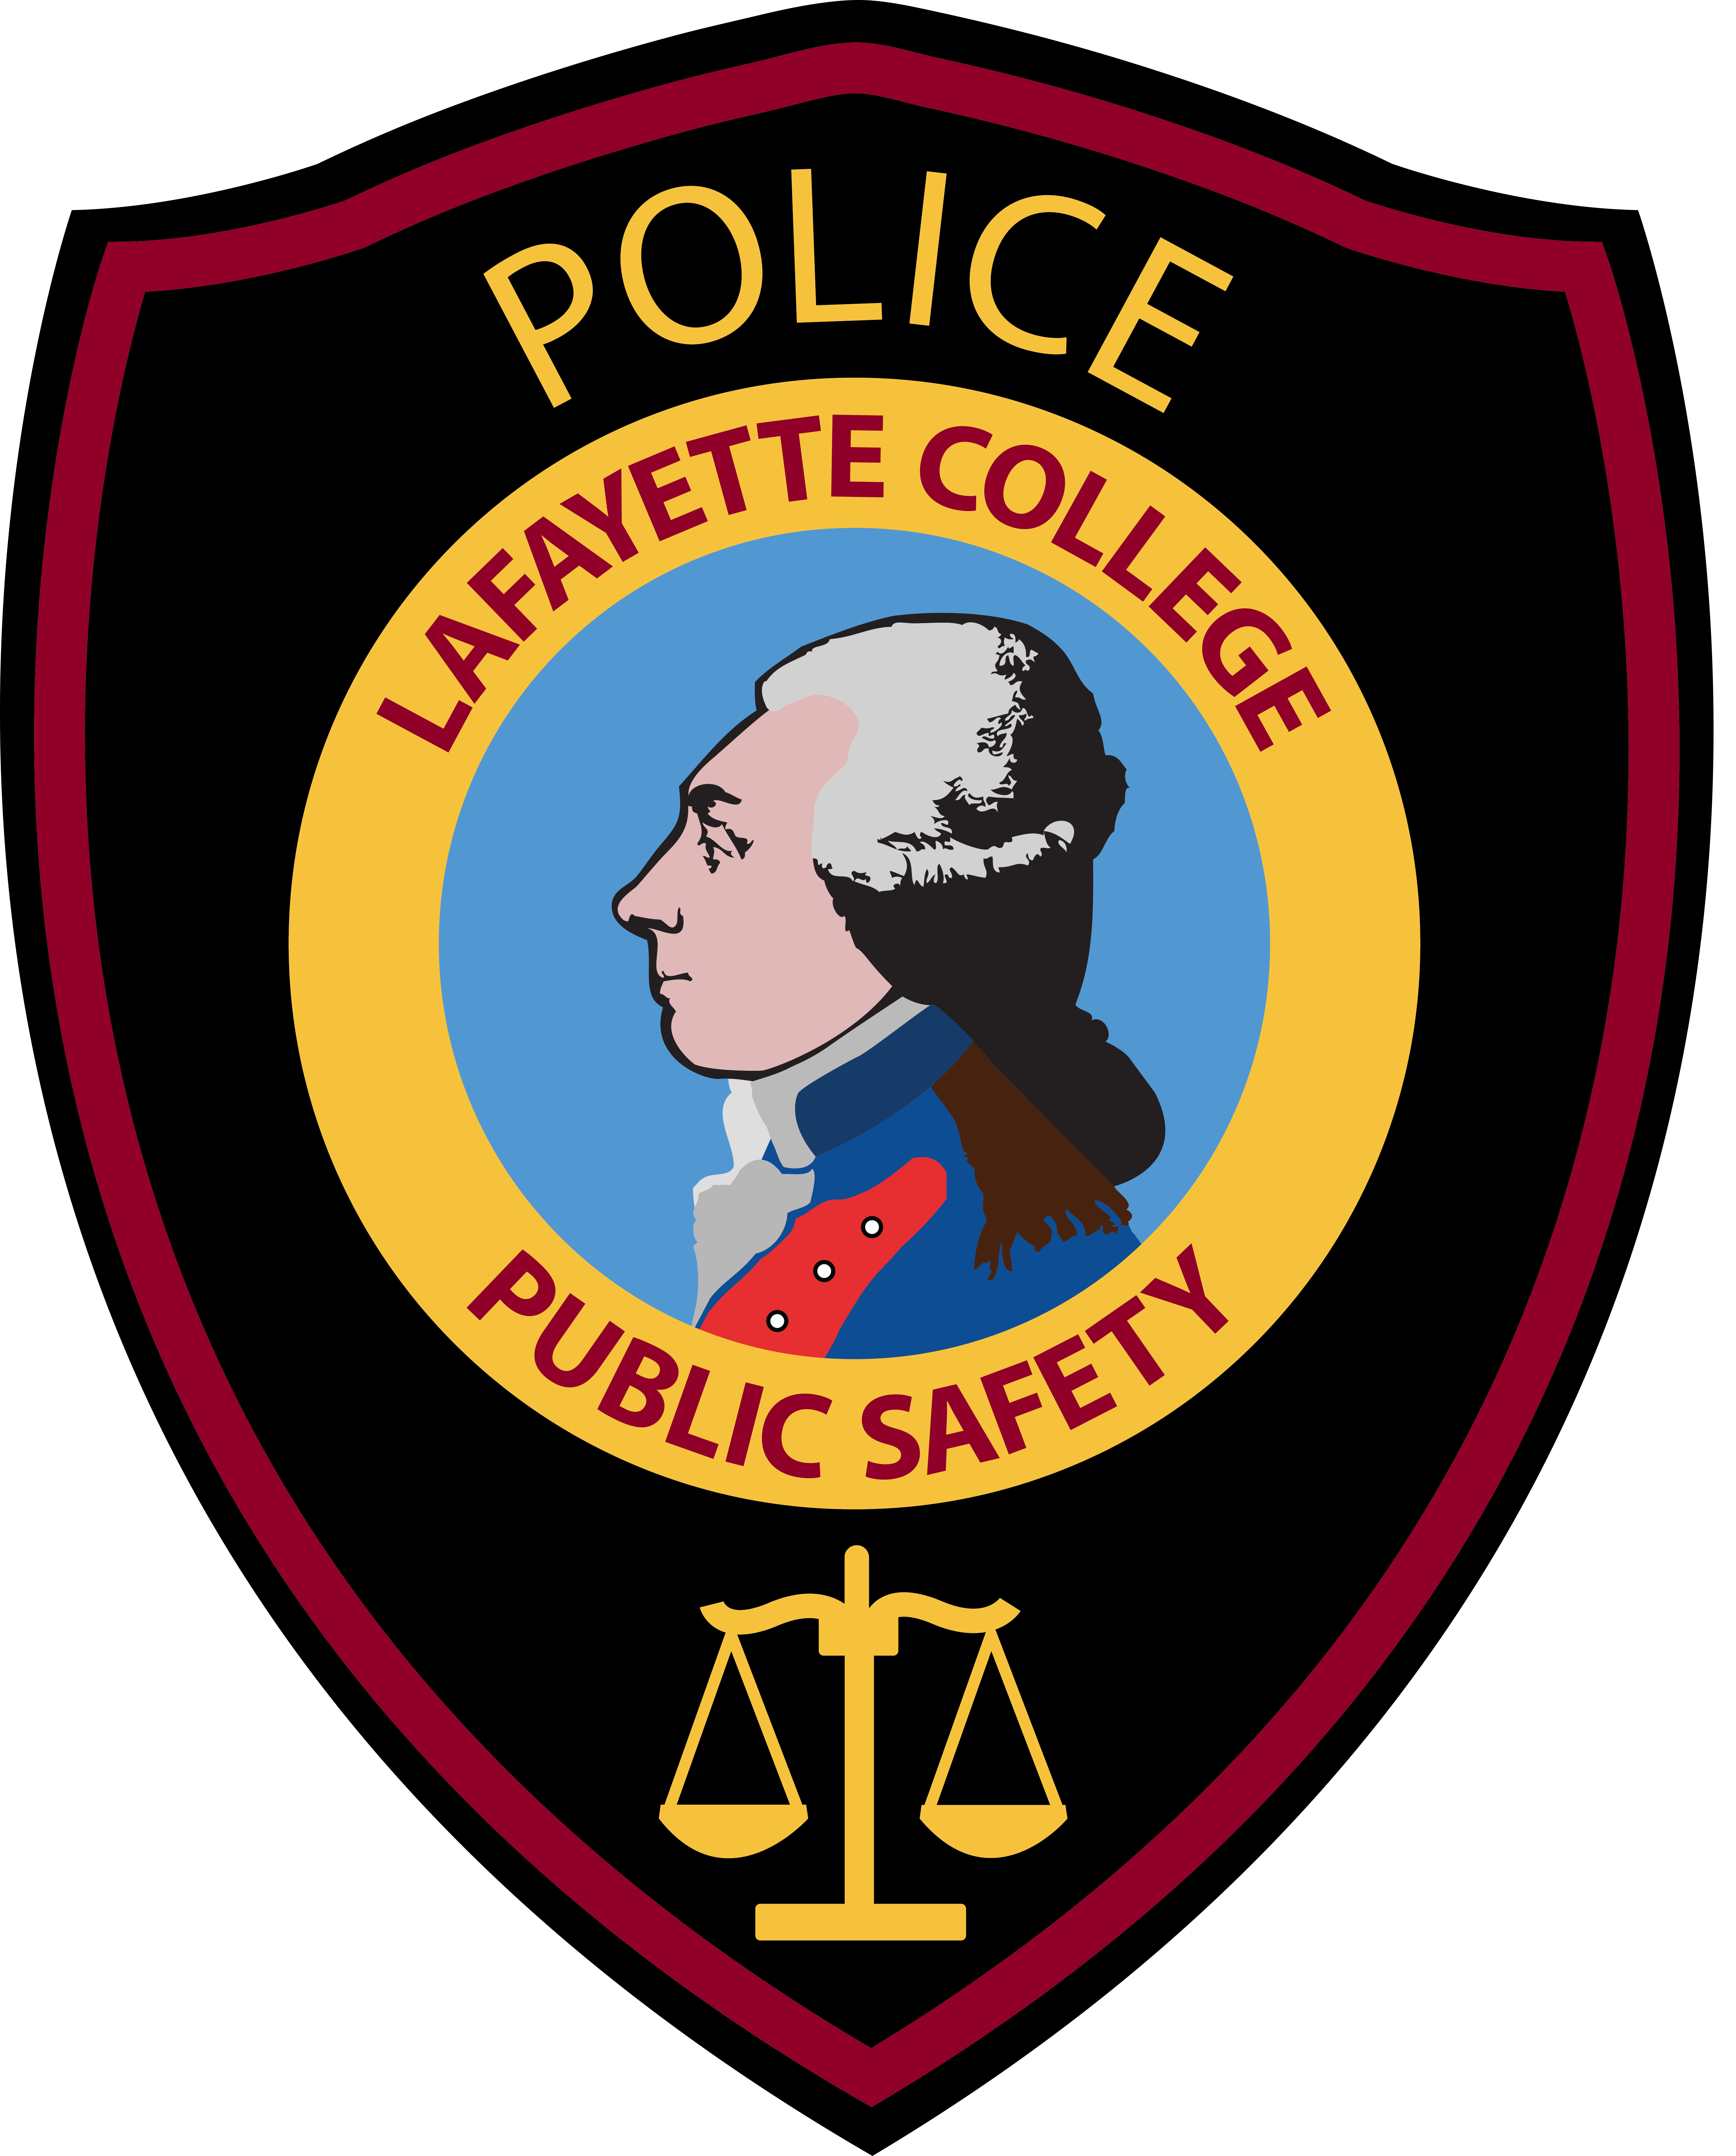 Public Safety Department | Lane Community College